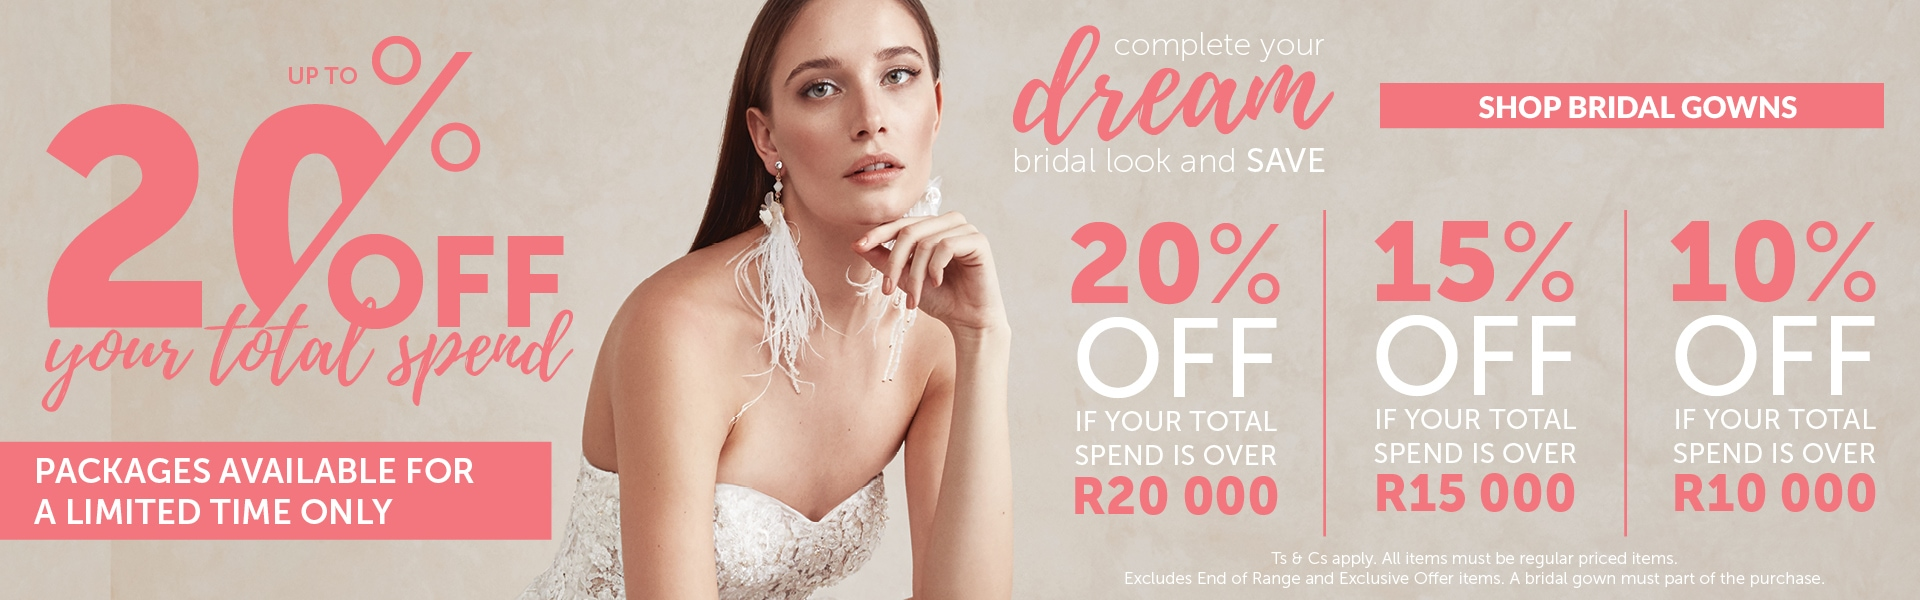 Promo Banner Bride&co Website July 2018